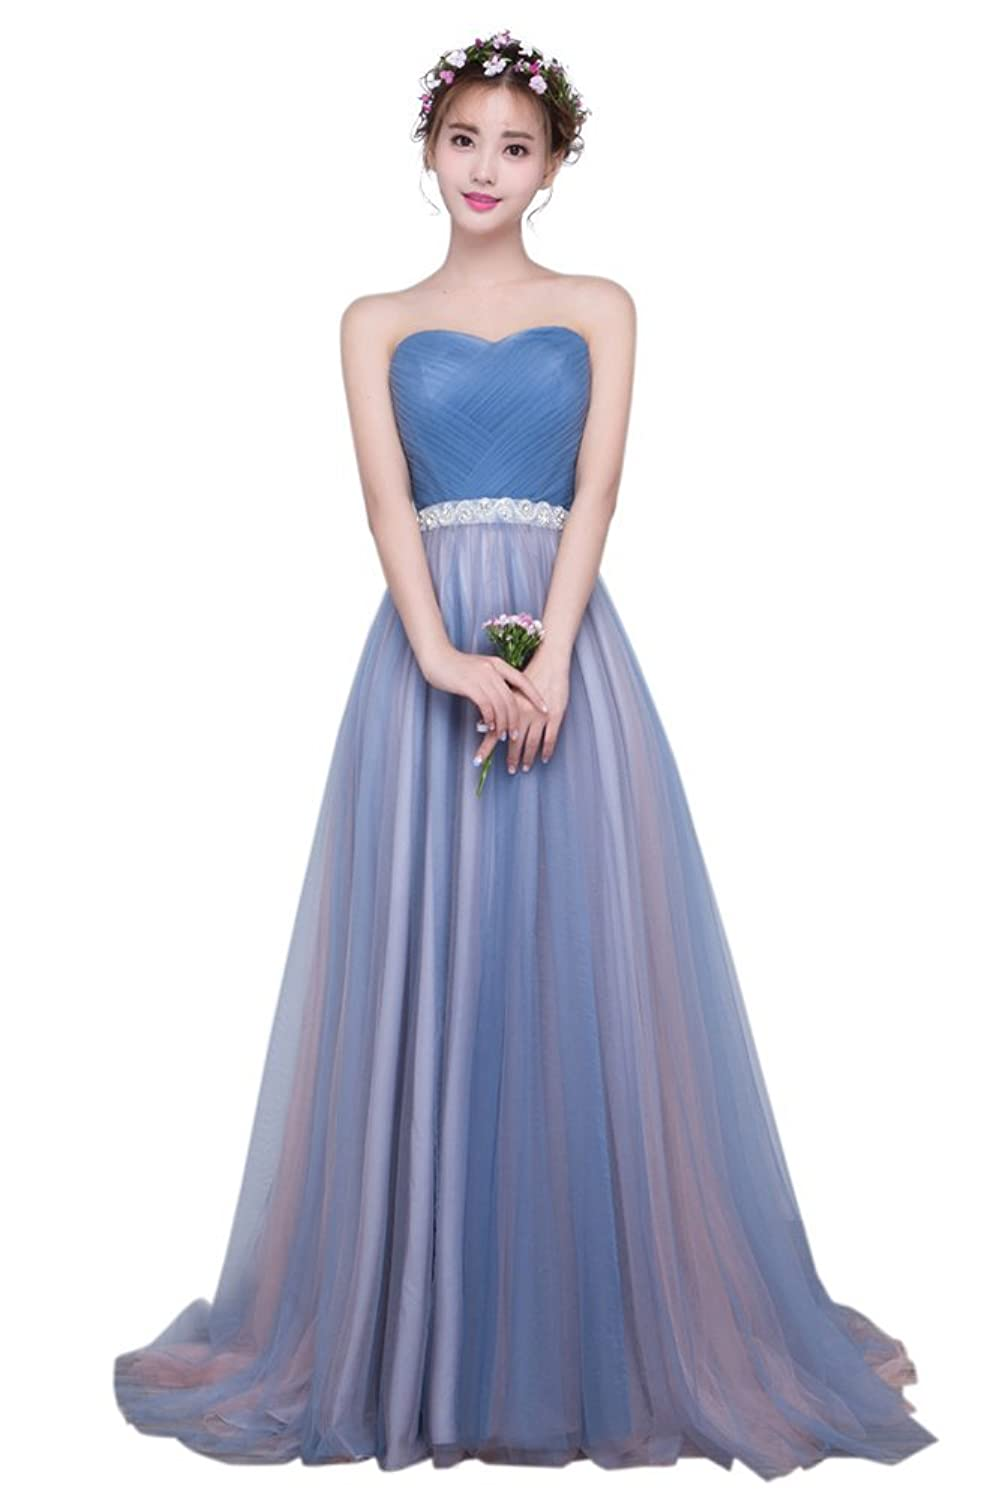 Drasawee Women's Strapless Empire Prom Party Wedding Dress Elegant Rhinestone Long Evening Formal Gowns UK14